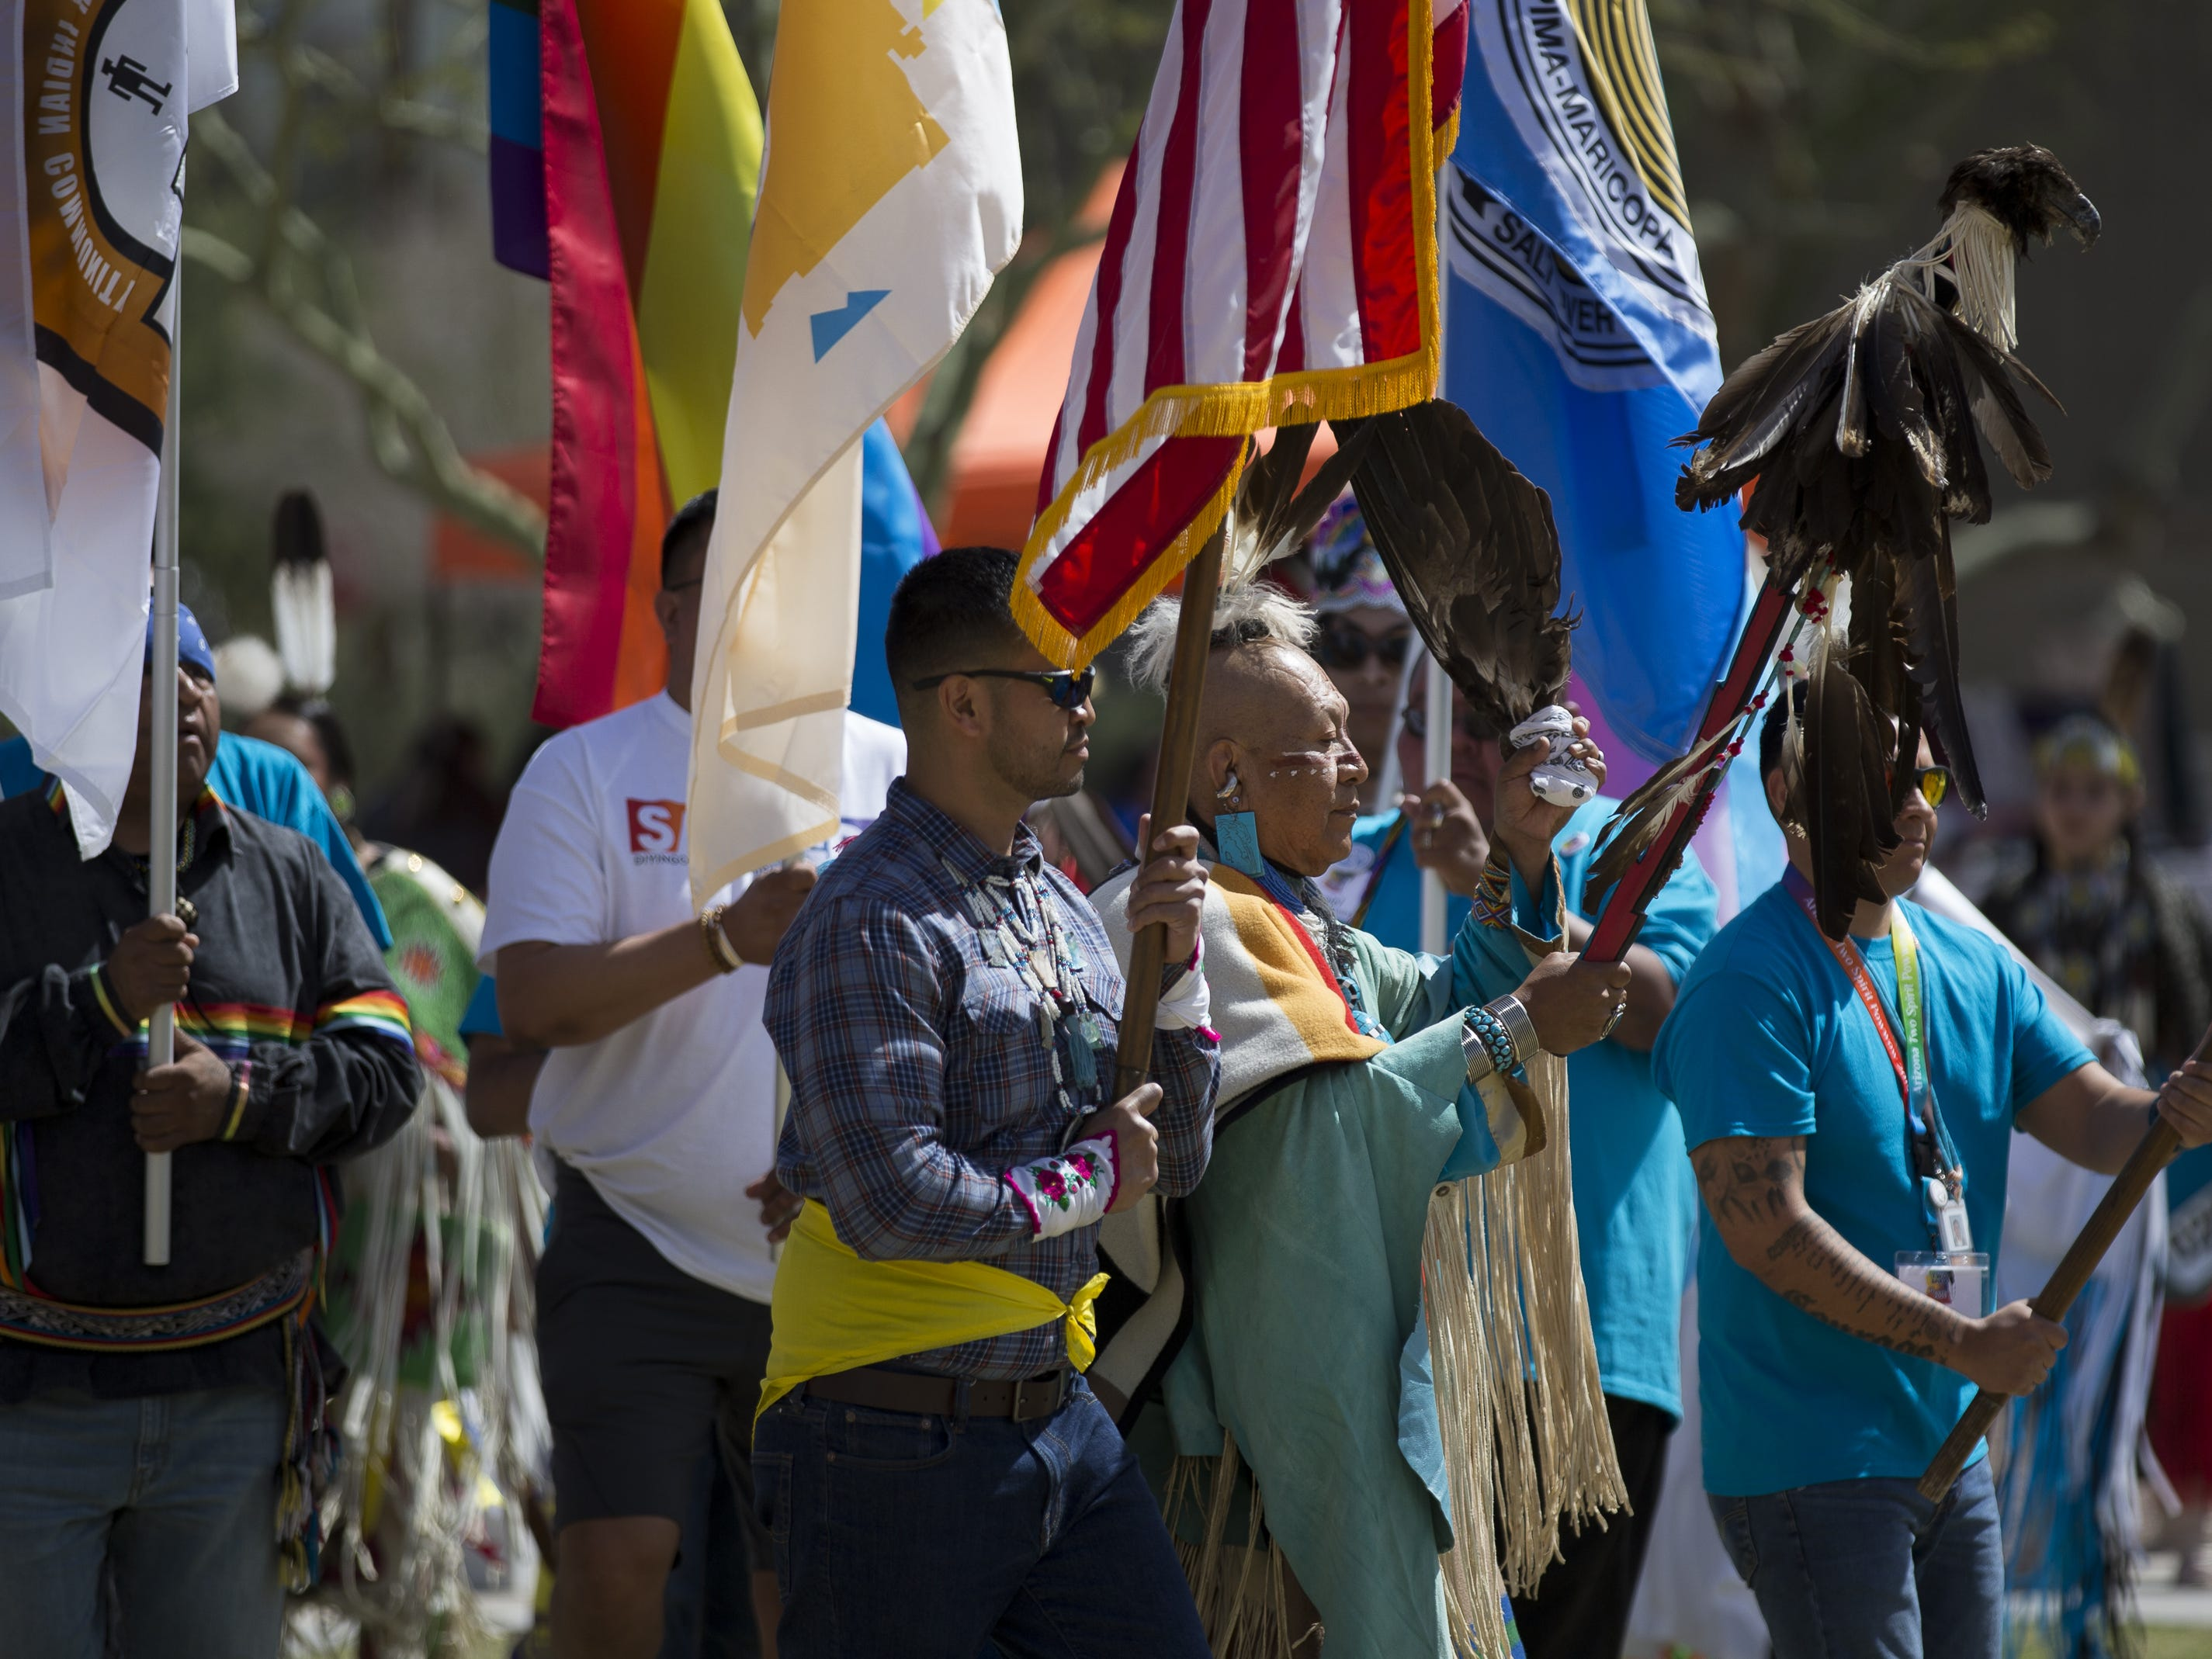 Flags are carried at the start of the Native Two Spirit Powwow at South Mountain Community College in Phoenix, Ariz. on Saturday, March 9, 2019. The powwow was the first of its kind in Arizona, featuring members who identified as two spirit, and members who did not, dancing together.